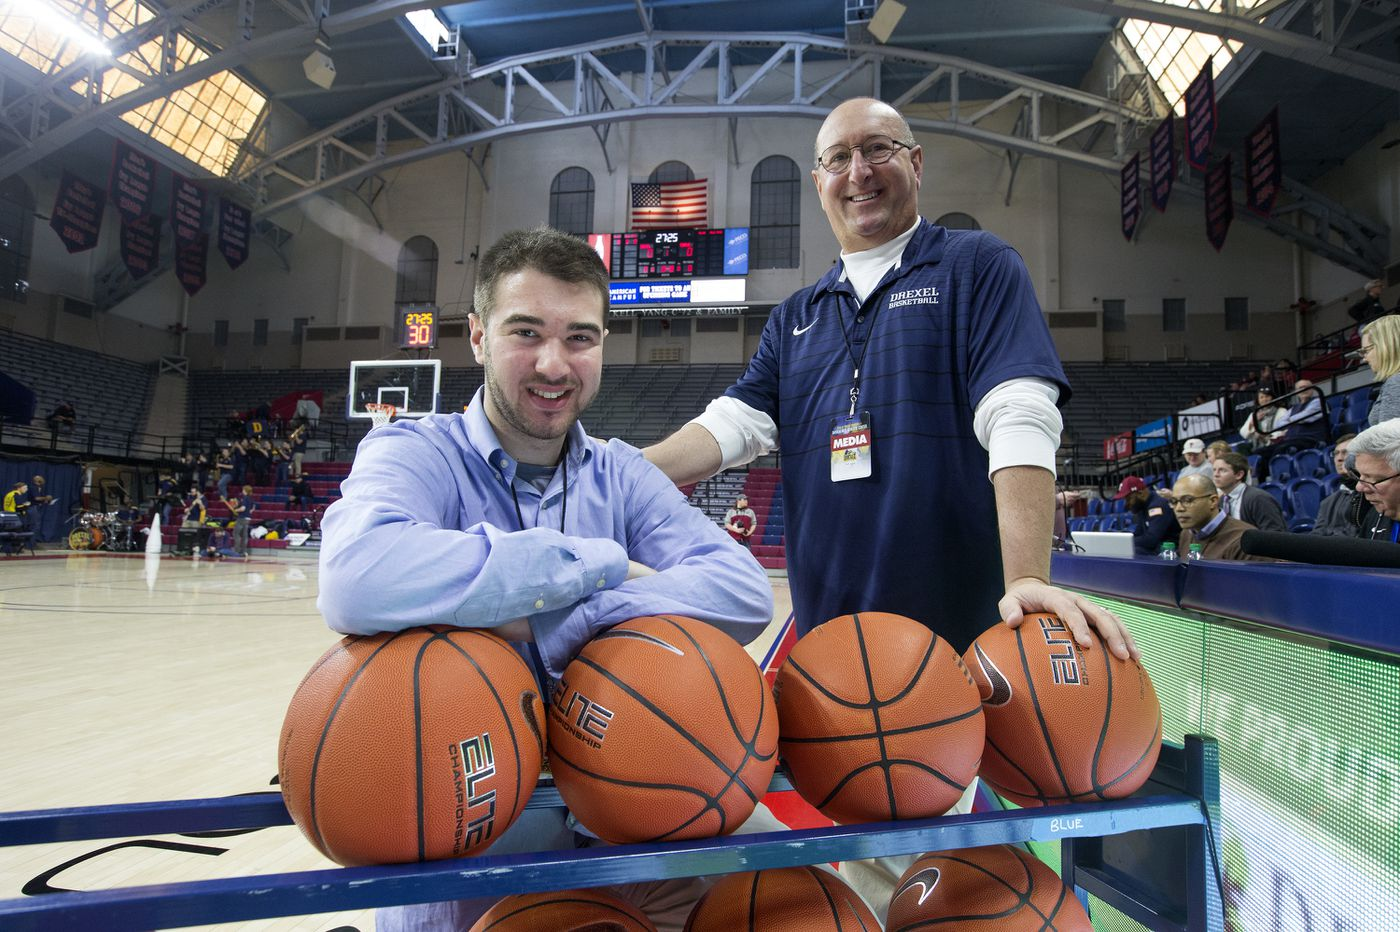 Drexel and Temple give broadcasters Jeff and David Asch a memorable father-son day at the Palestra